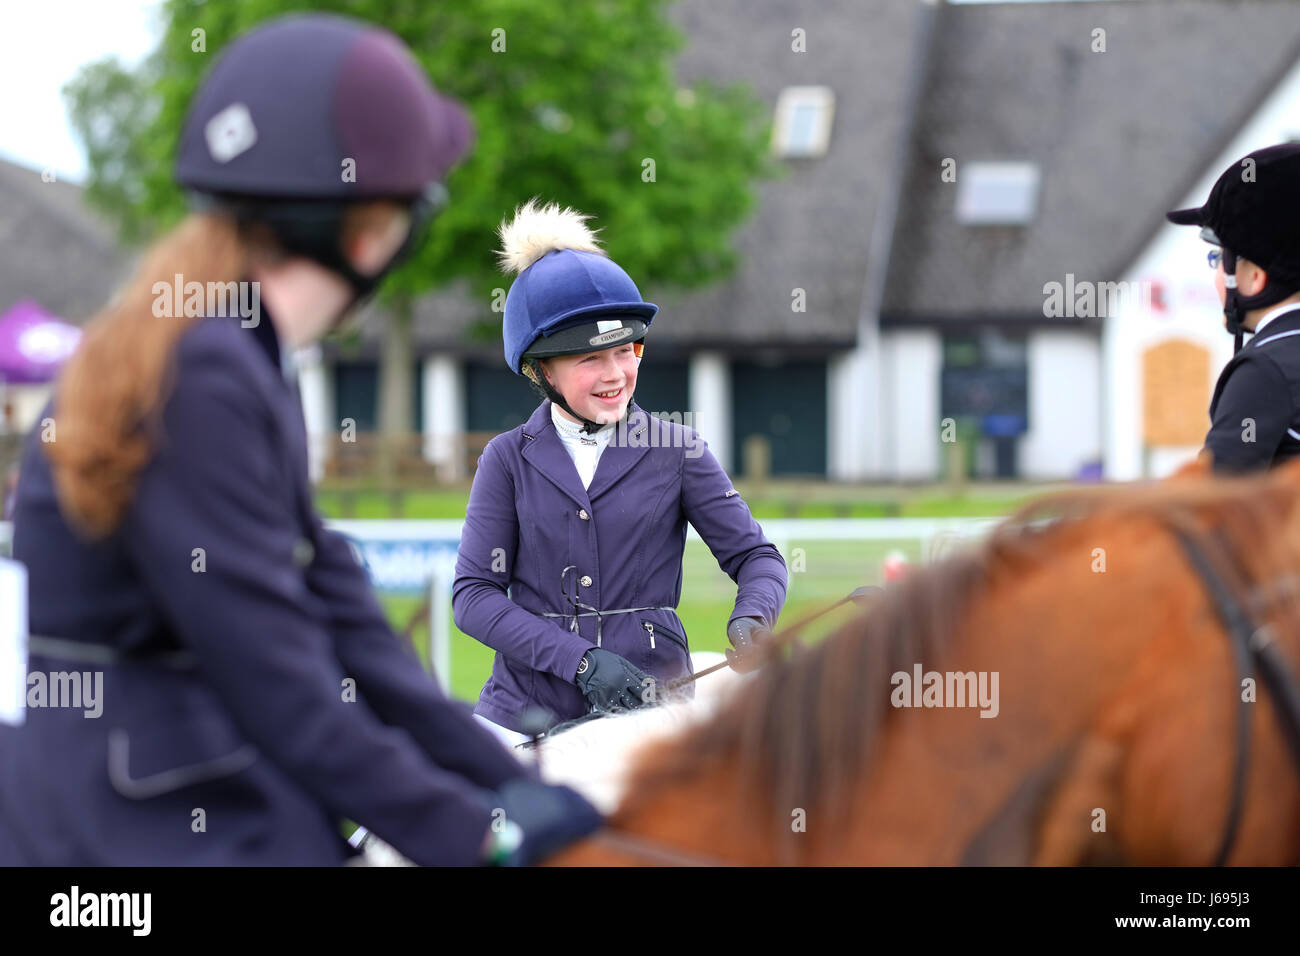 Royal Welsh Spring Festival, Builth Wells, Powys, Wales - May 2017 - Competitors in the junior show jumping event - Stock Image